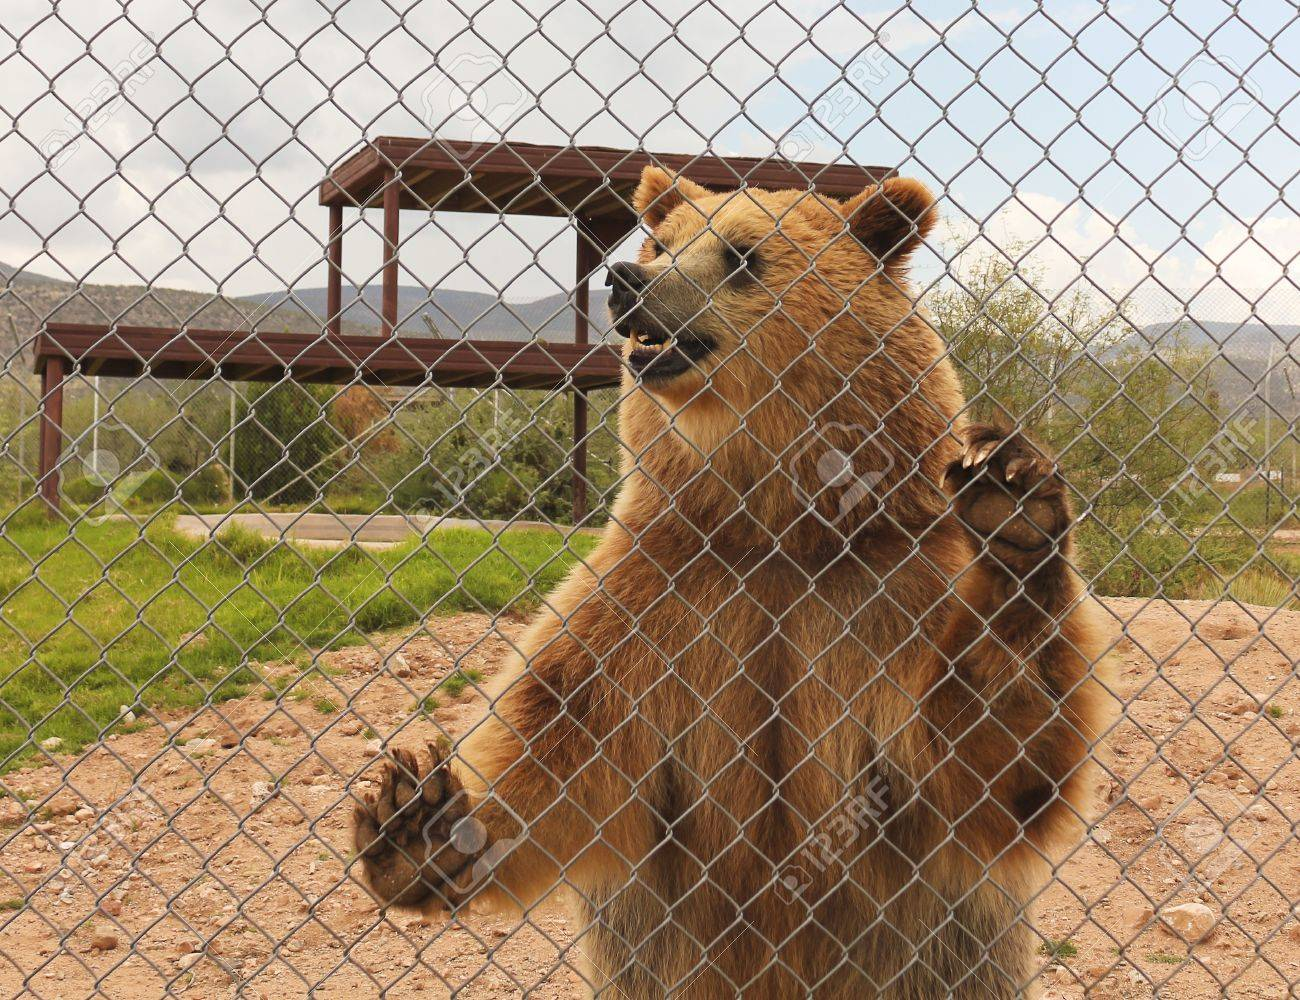 A Grizzly Bear Stands Against The Fence Of Its Zoo Enclosure Stock Photo, Picture And Royalty Free Image. Image 21647271.